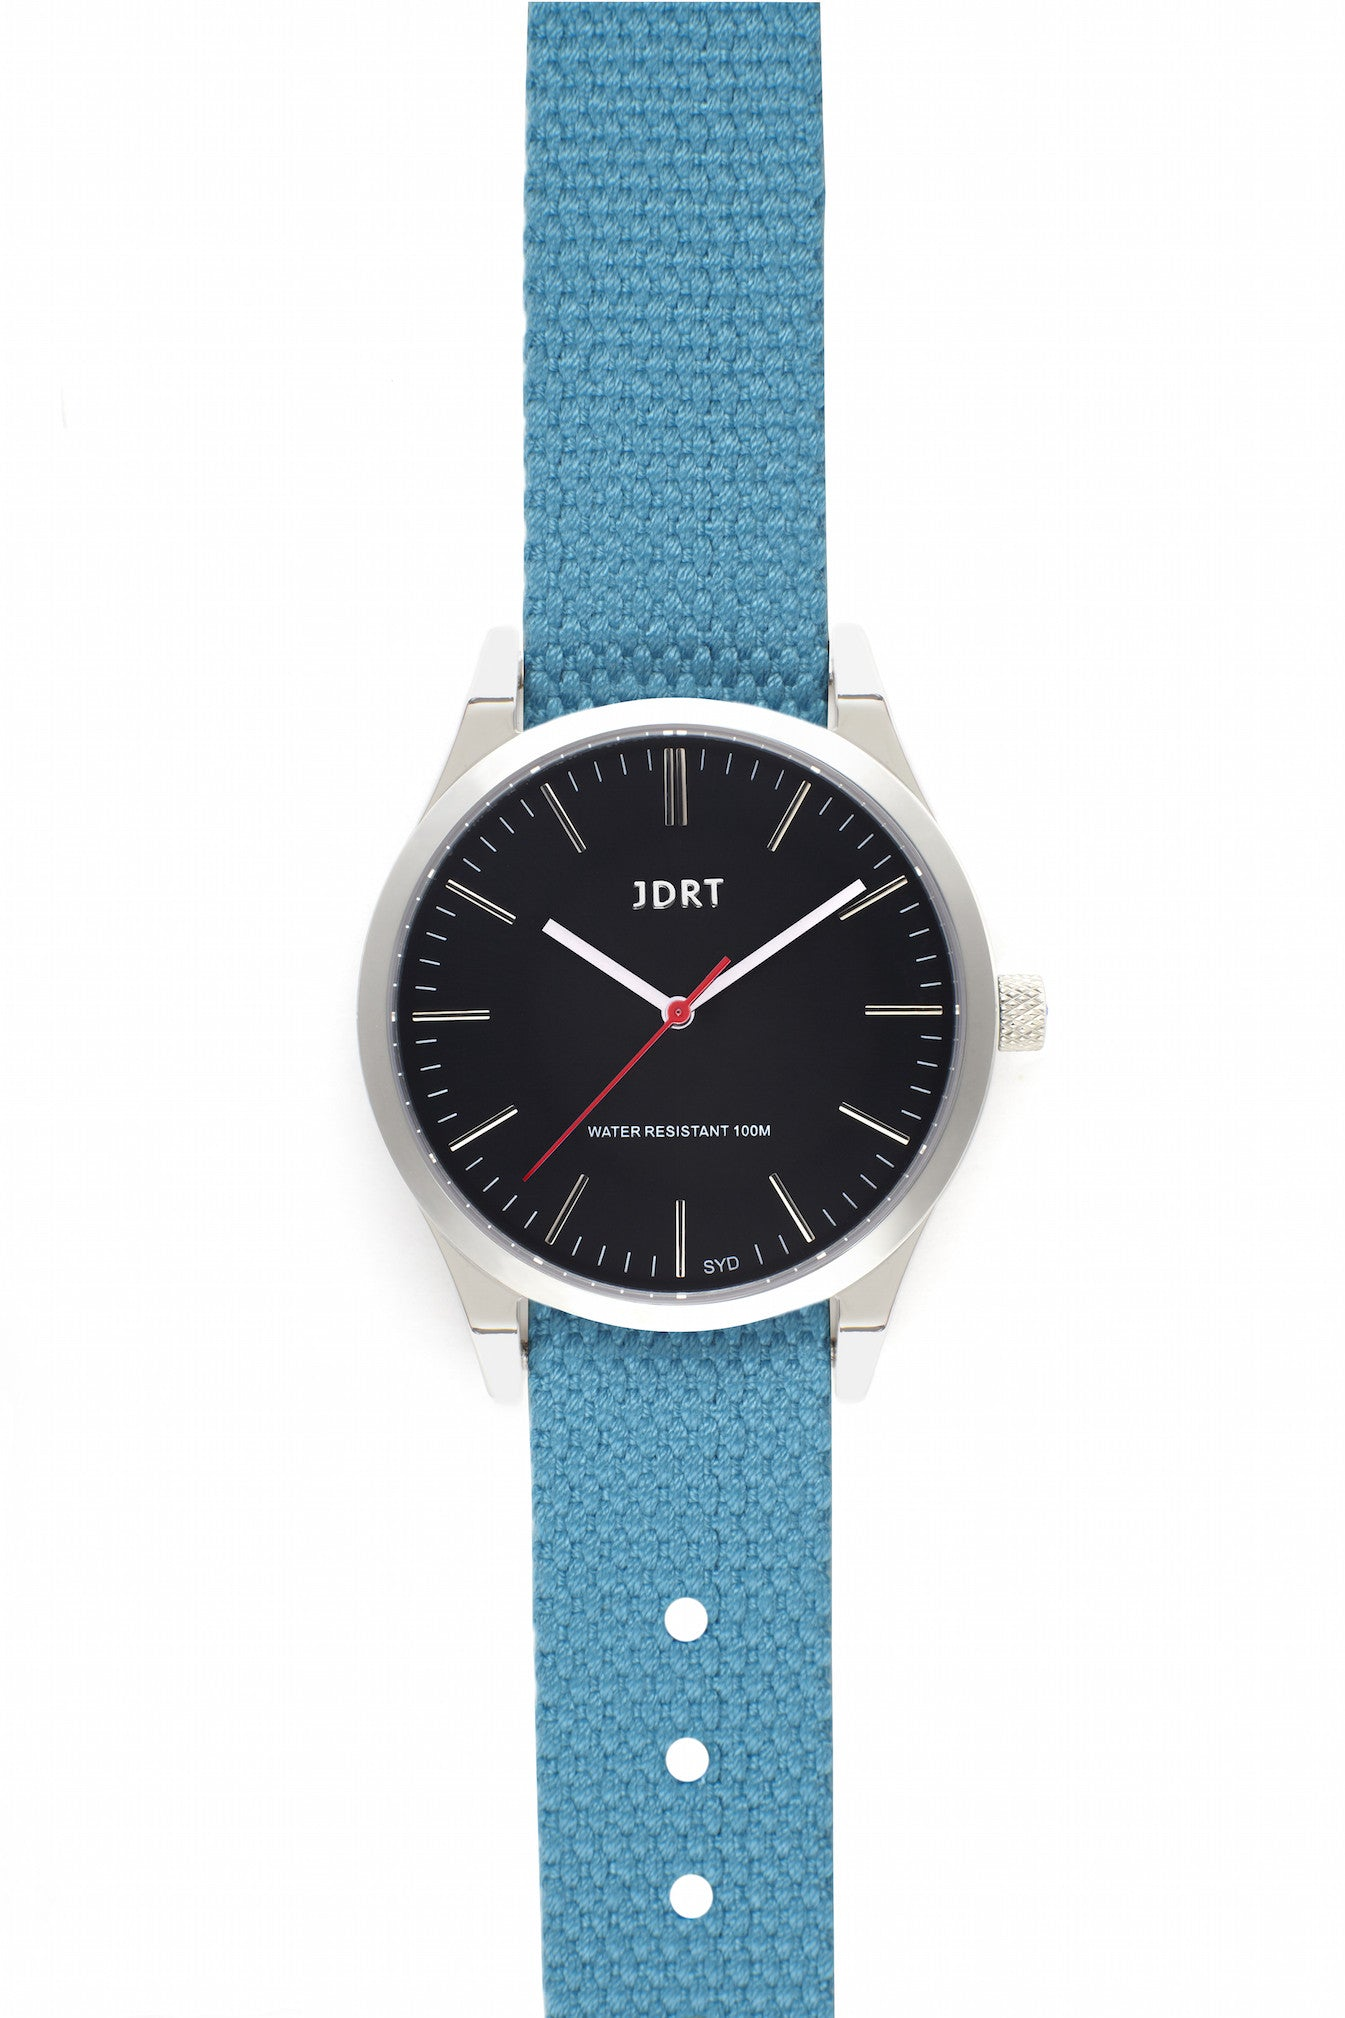 Jet Face with Caribbean Canvas Watch Band